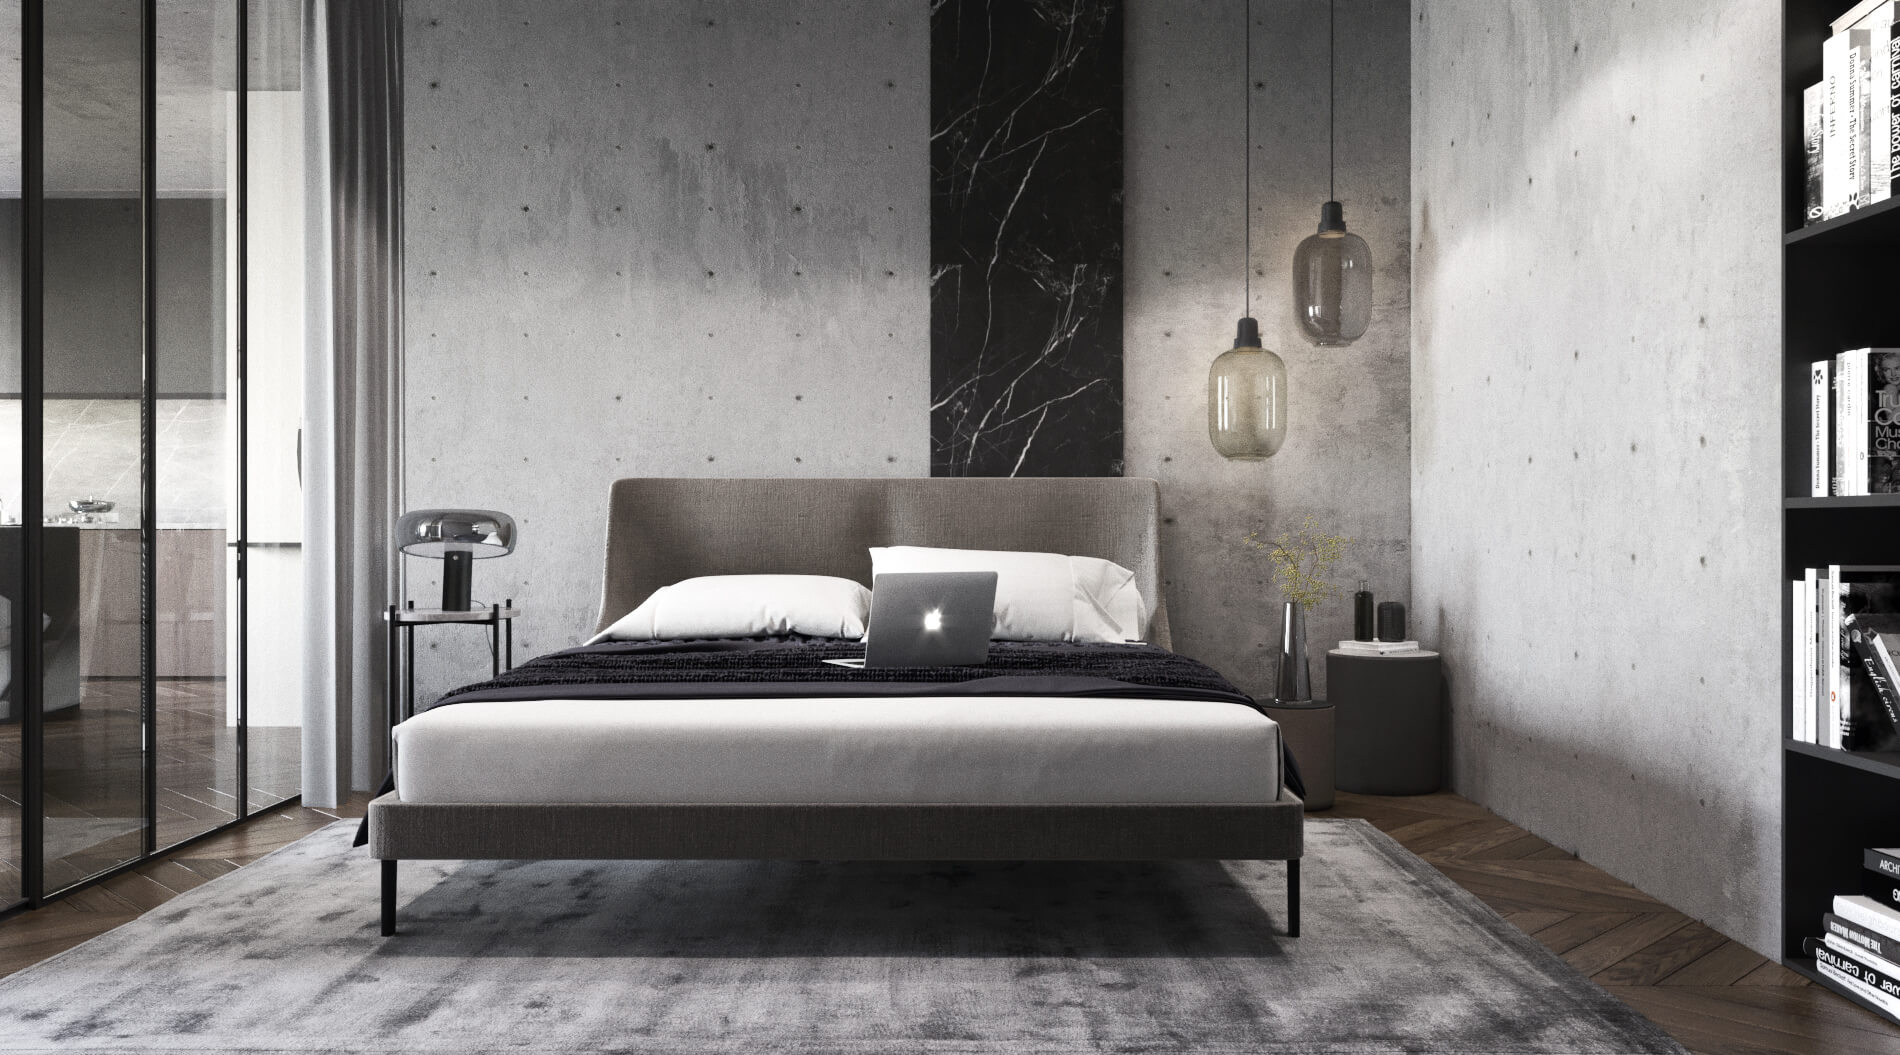 Stylish bedroom in dark colors